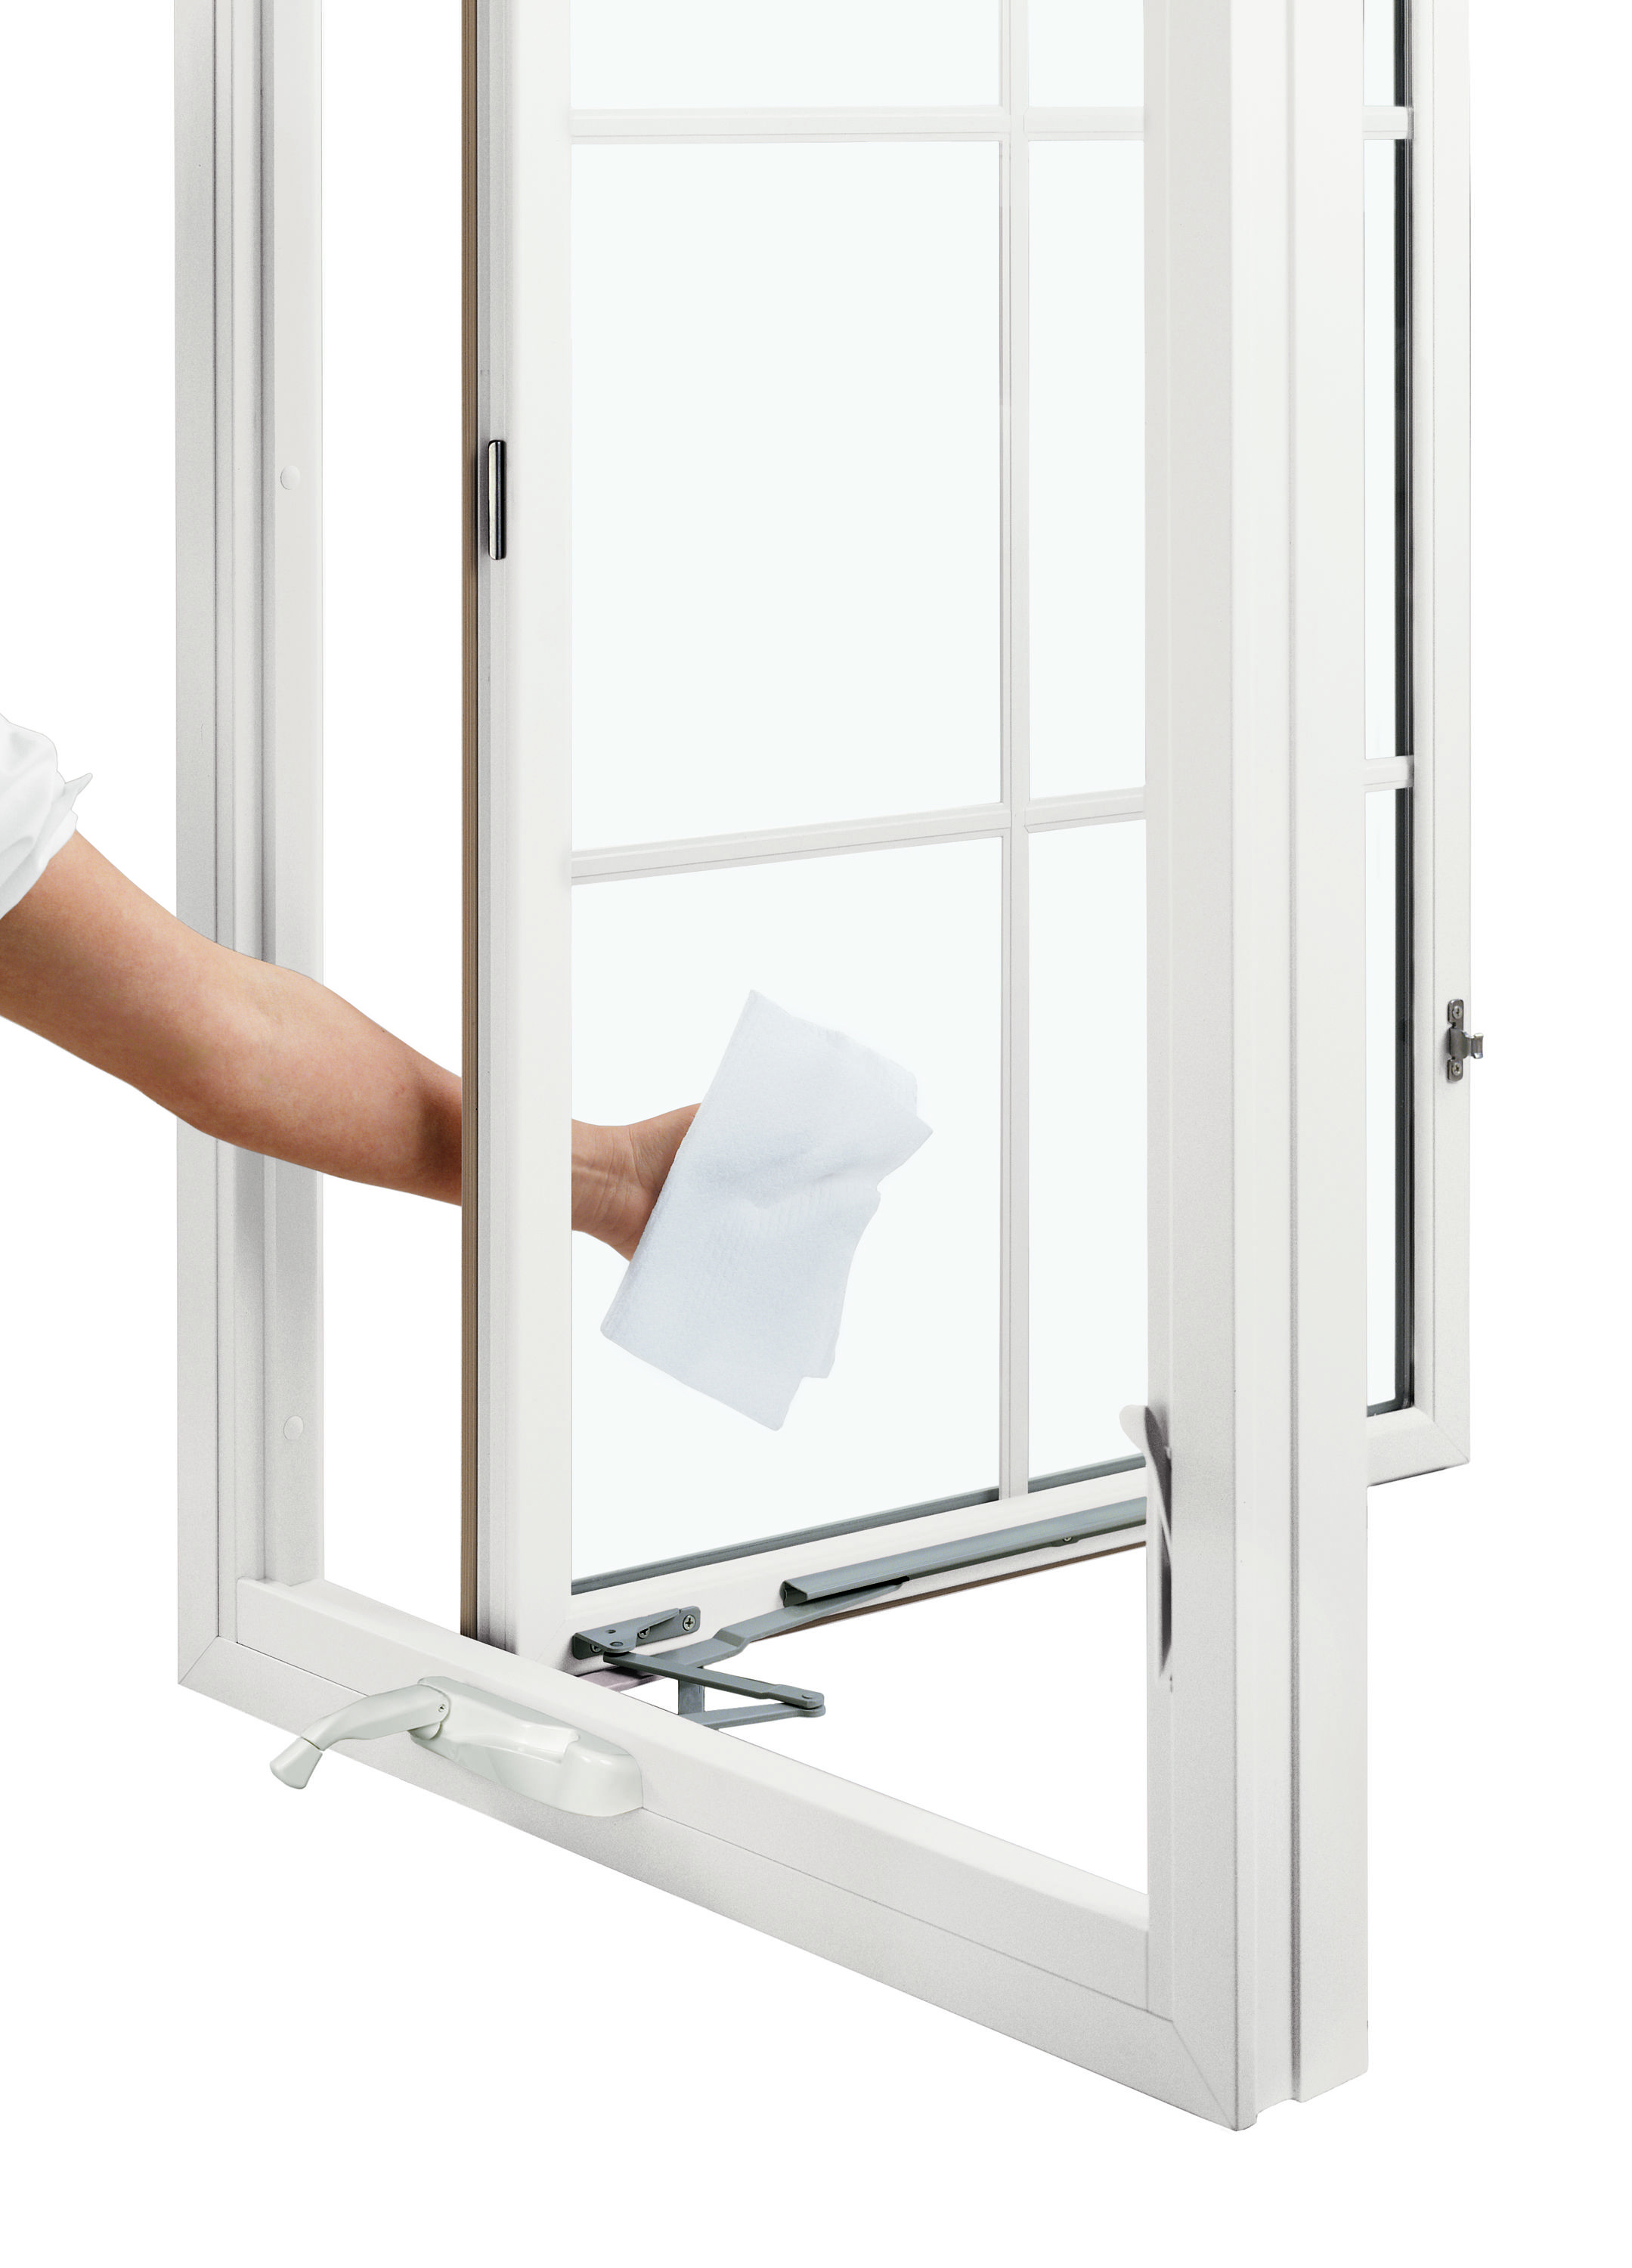 Infinity Casement Window With Easy Wash Hinges Casement Windows Replacement Casement Windows Casement